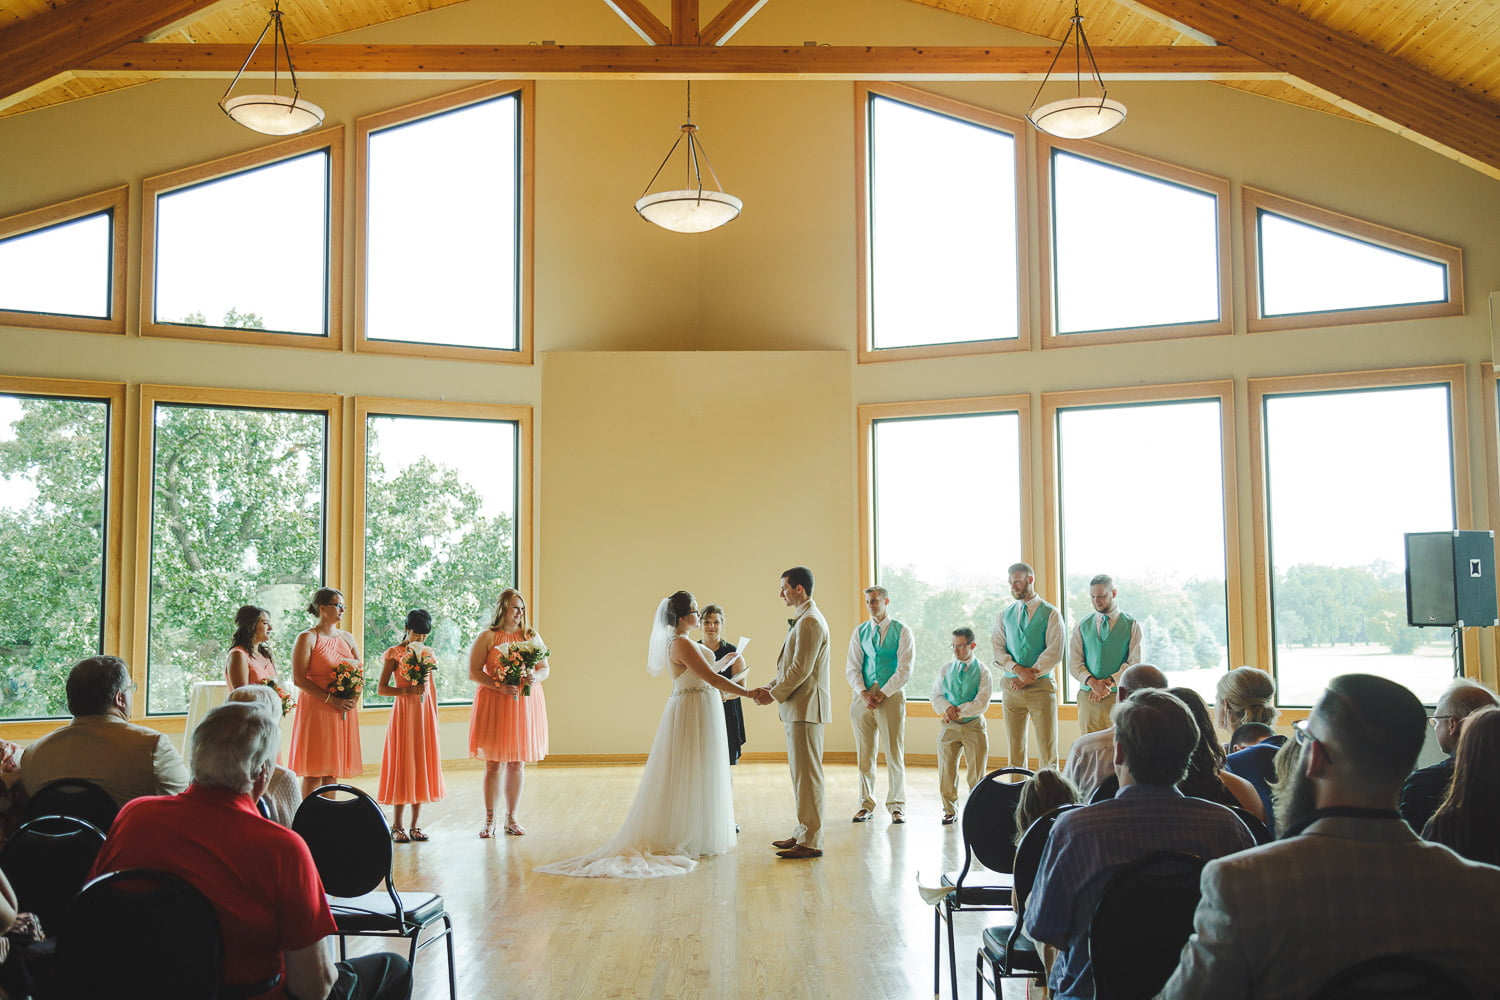 inddor wedding riverview greens rochester mn